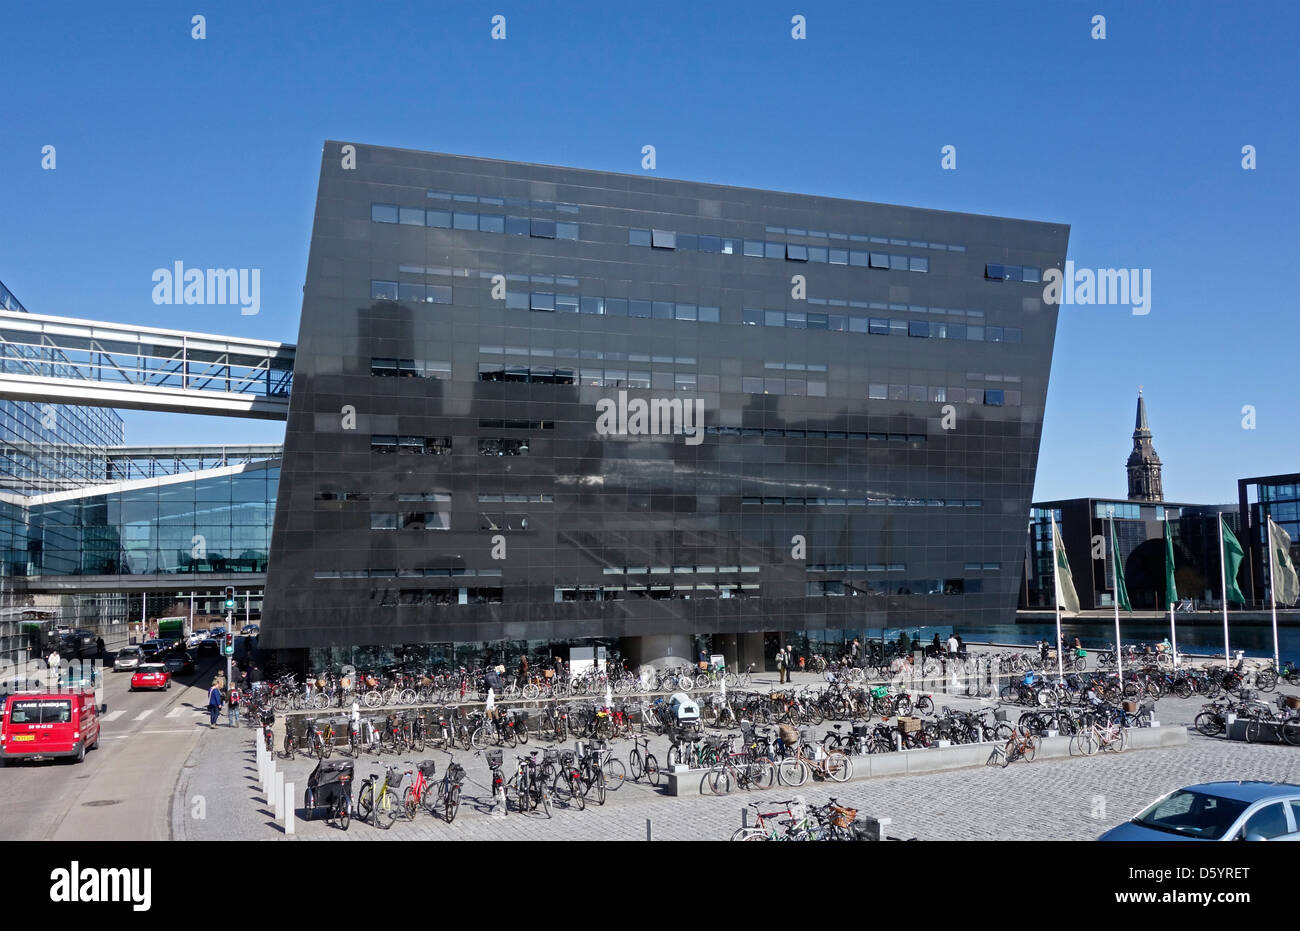 The Royal Danish Library is housed in a building termed The Black Diamond  located on the Copenhagen waterfront - Stock Image